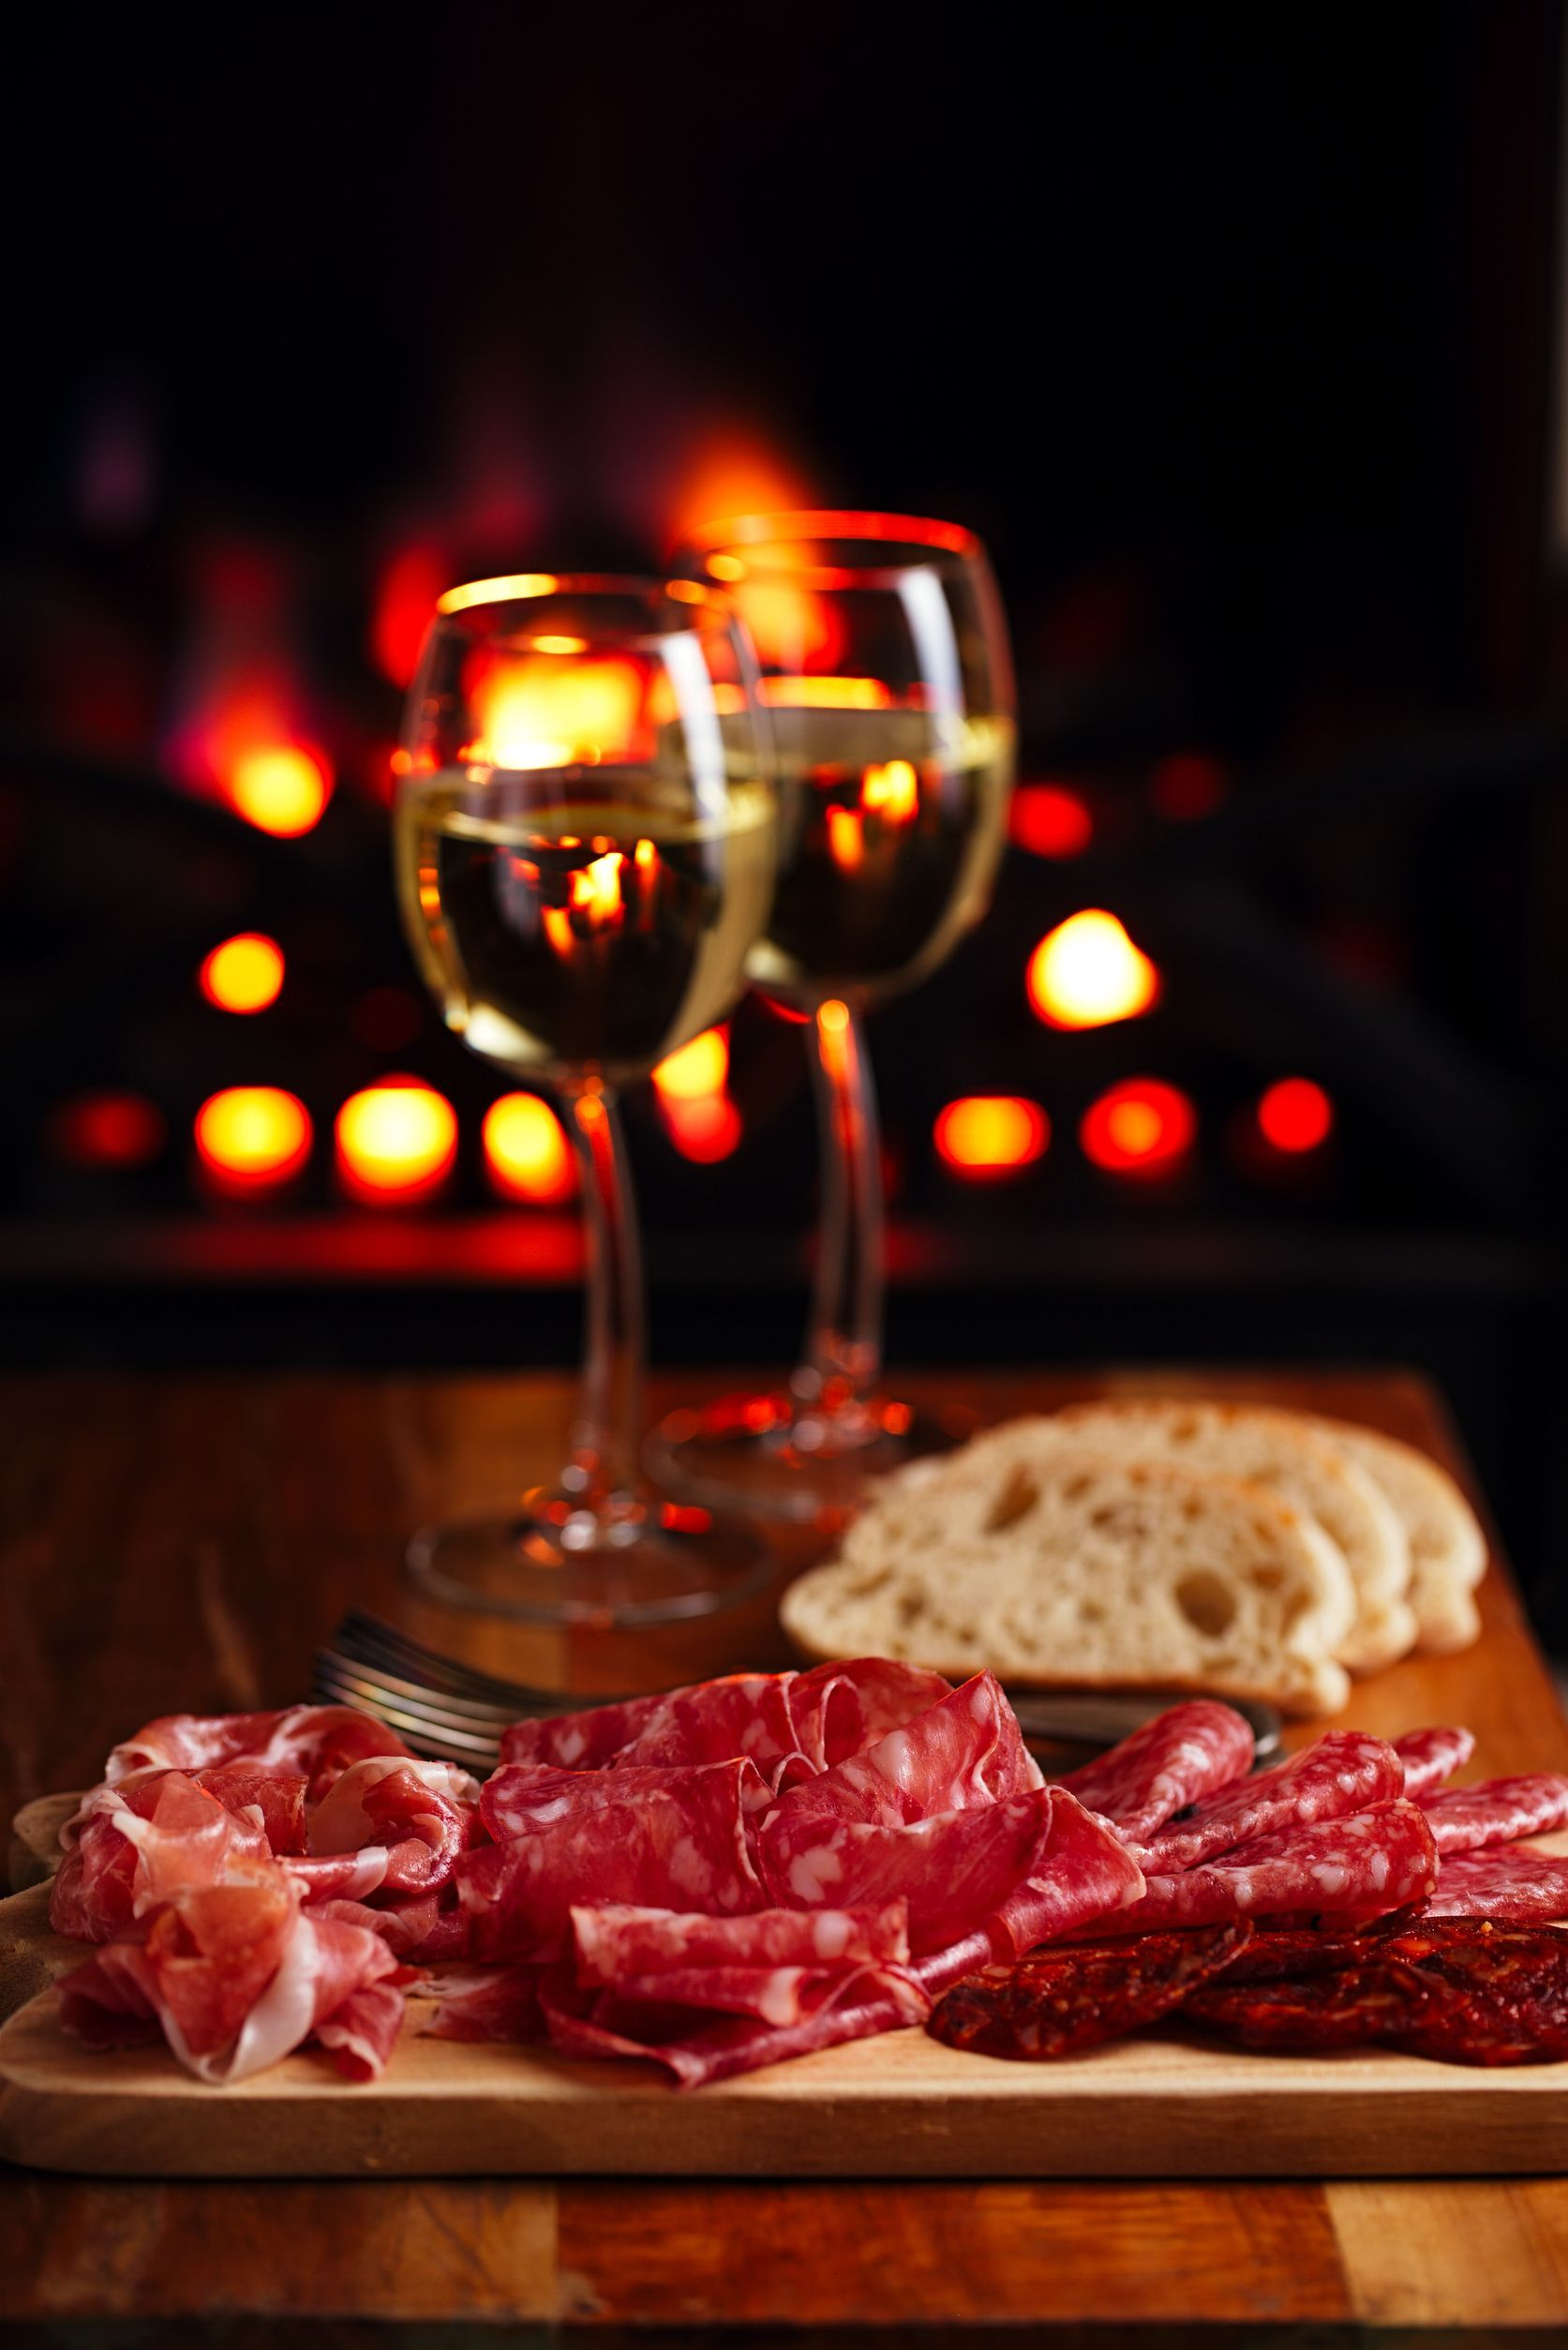 Meat Fireplace Wine Romantic Burger And Fries Wine And Dine Food